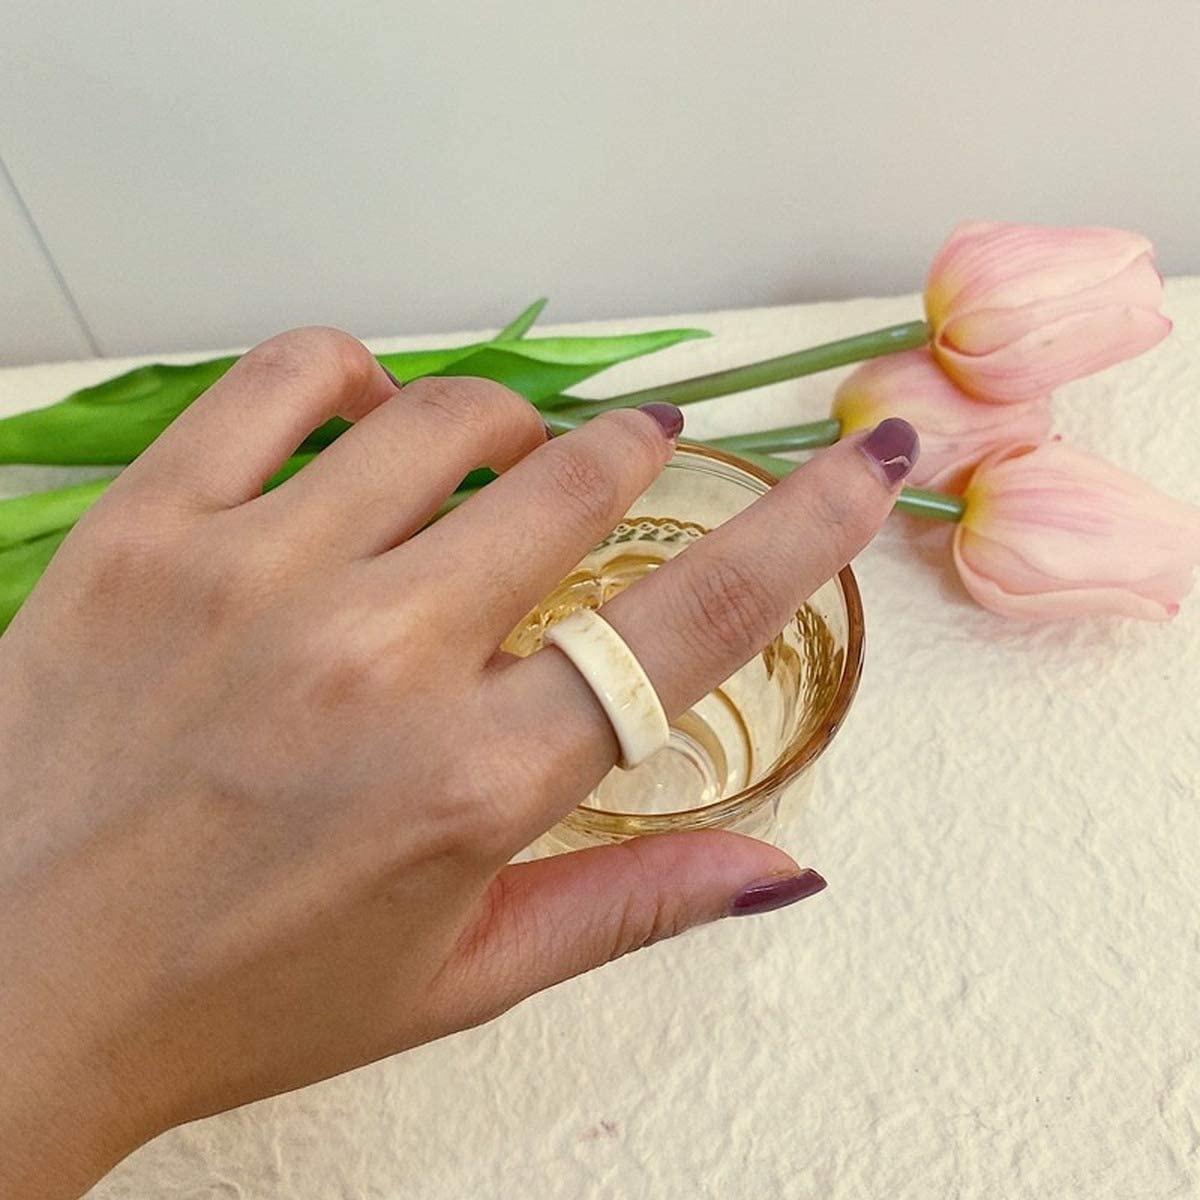 4PCS Retro Vintage Resin Ring Set Transparent Acrylic Finger Rings Jewellery Gifts for Women Girls Friends